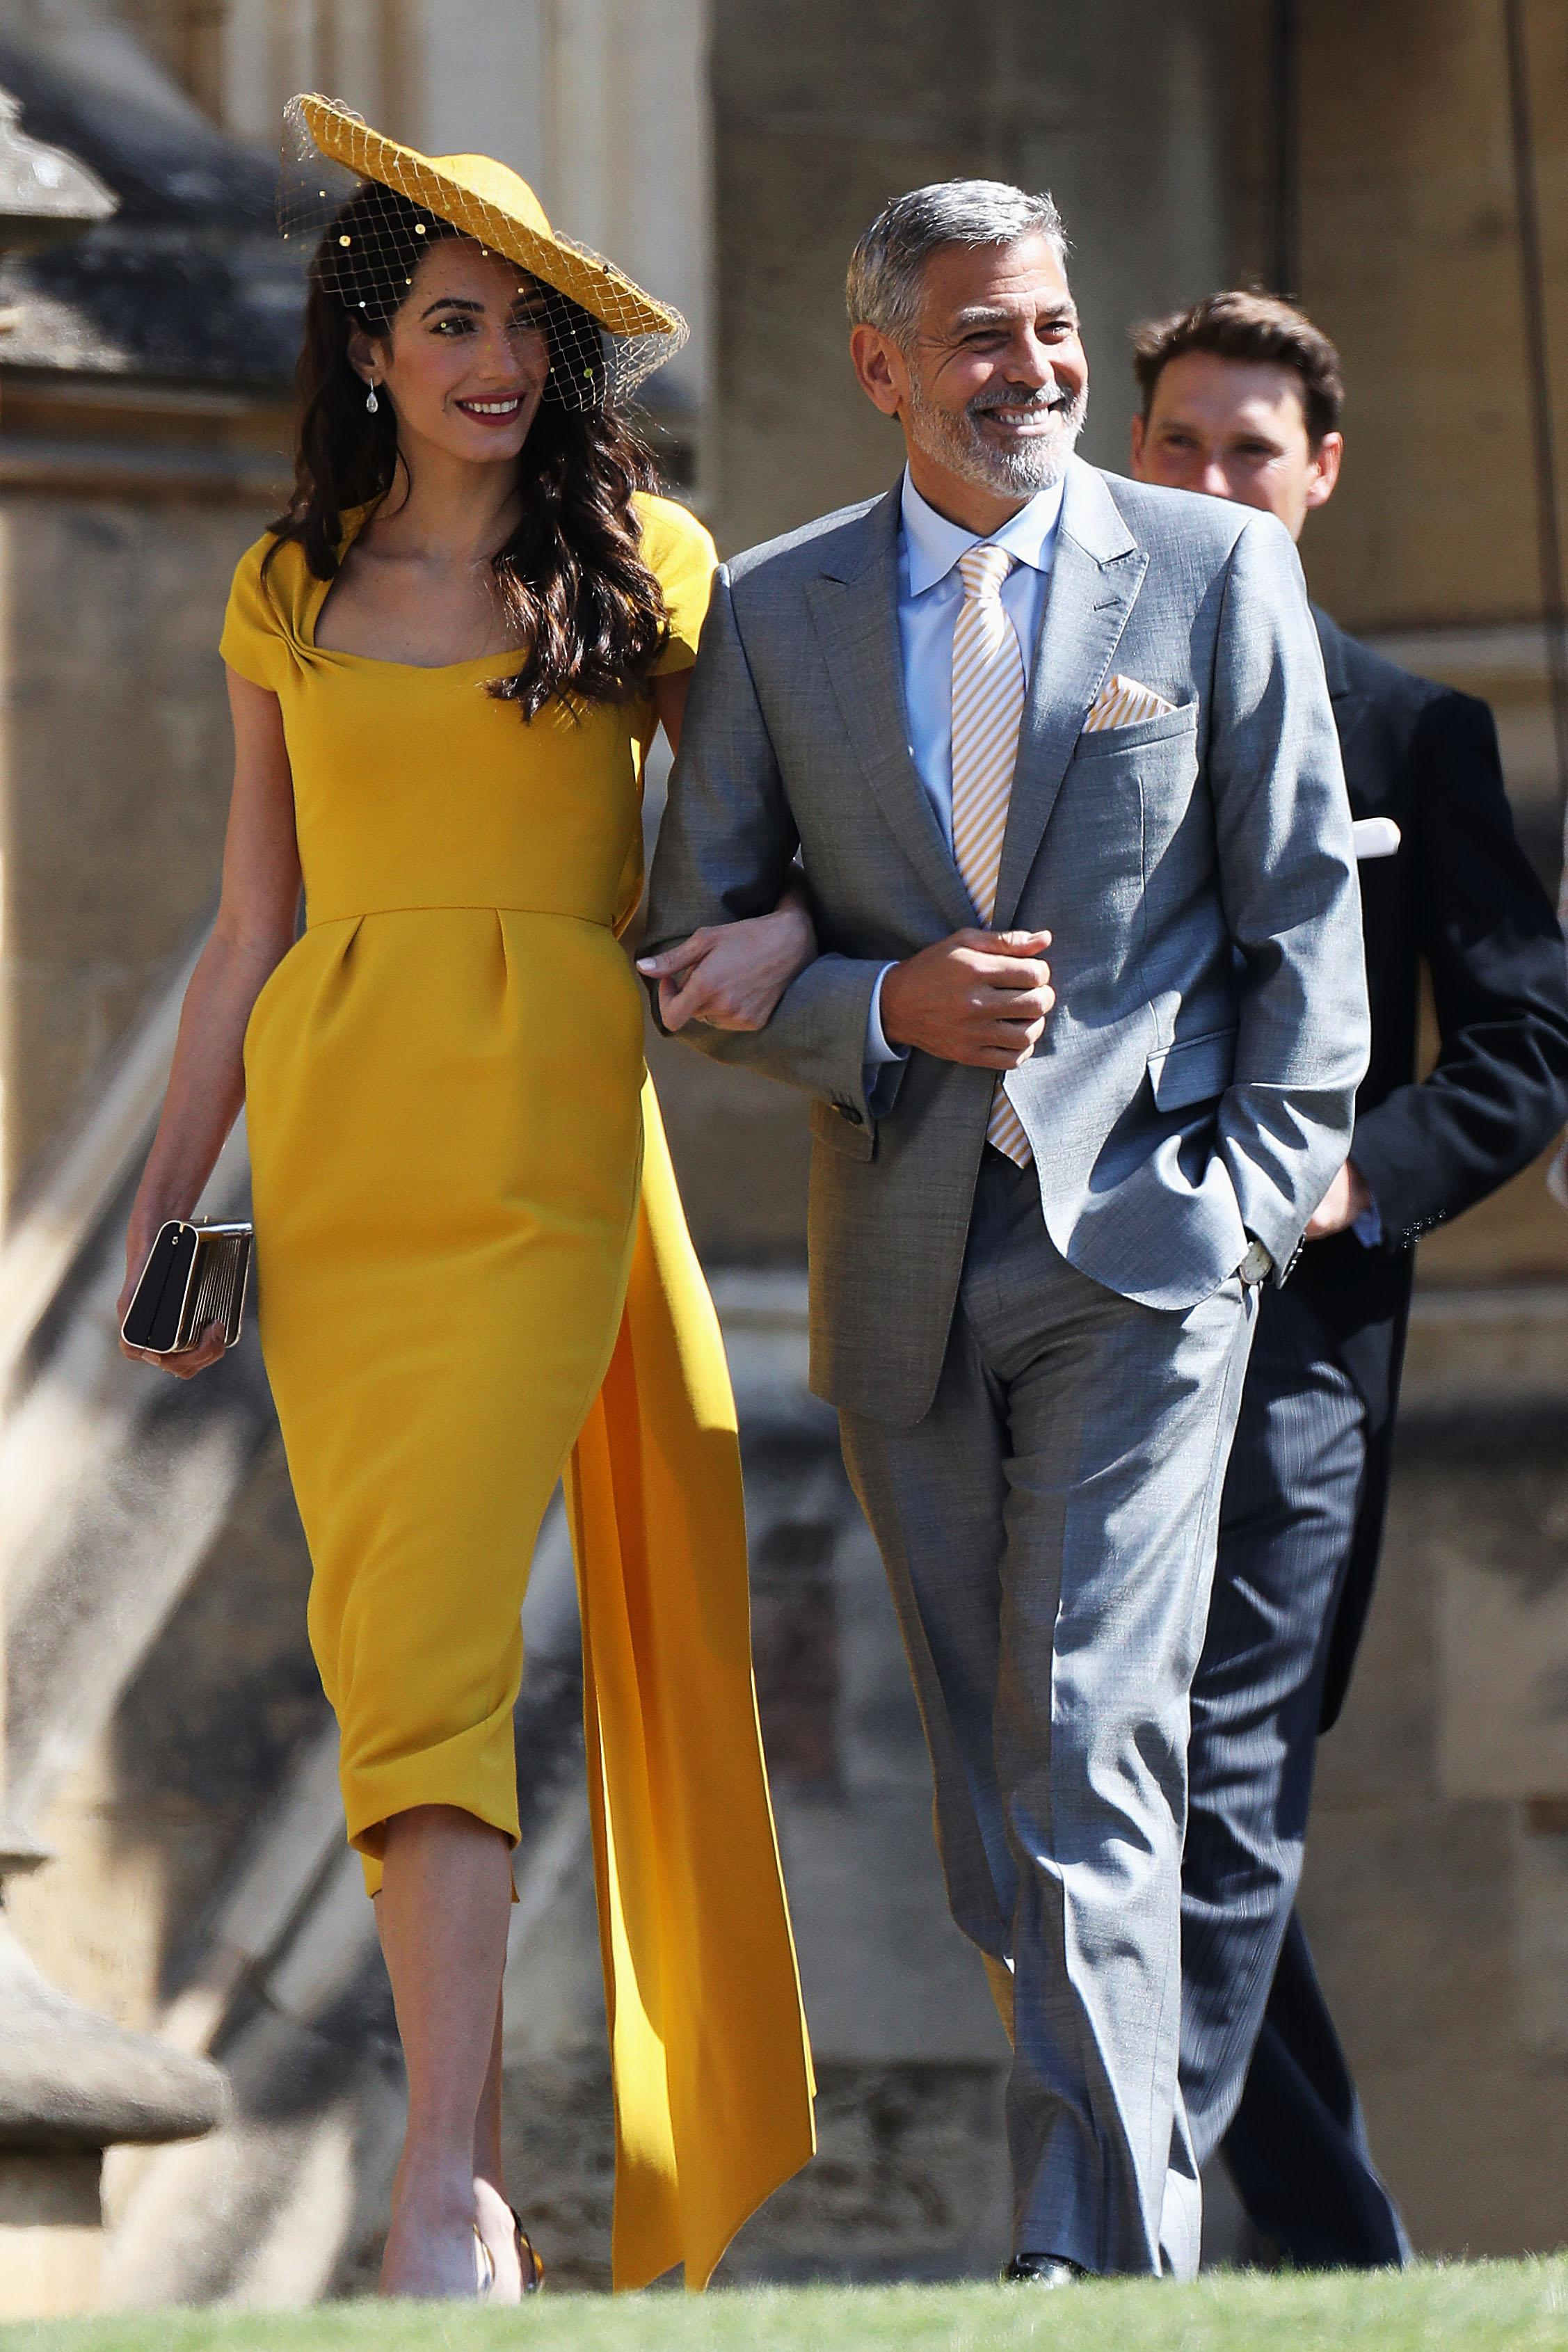 George and Amal Clooney at the Royal Wedding C23001416c625b4206342f39d707b85e